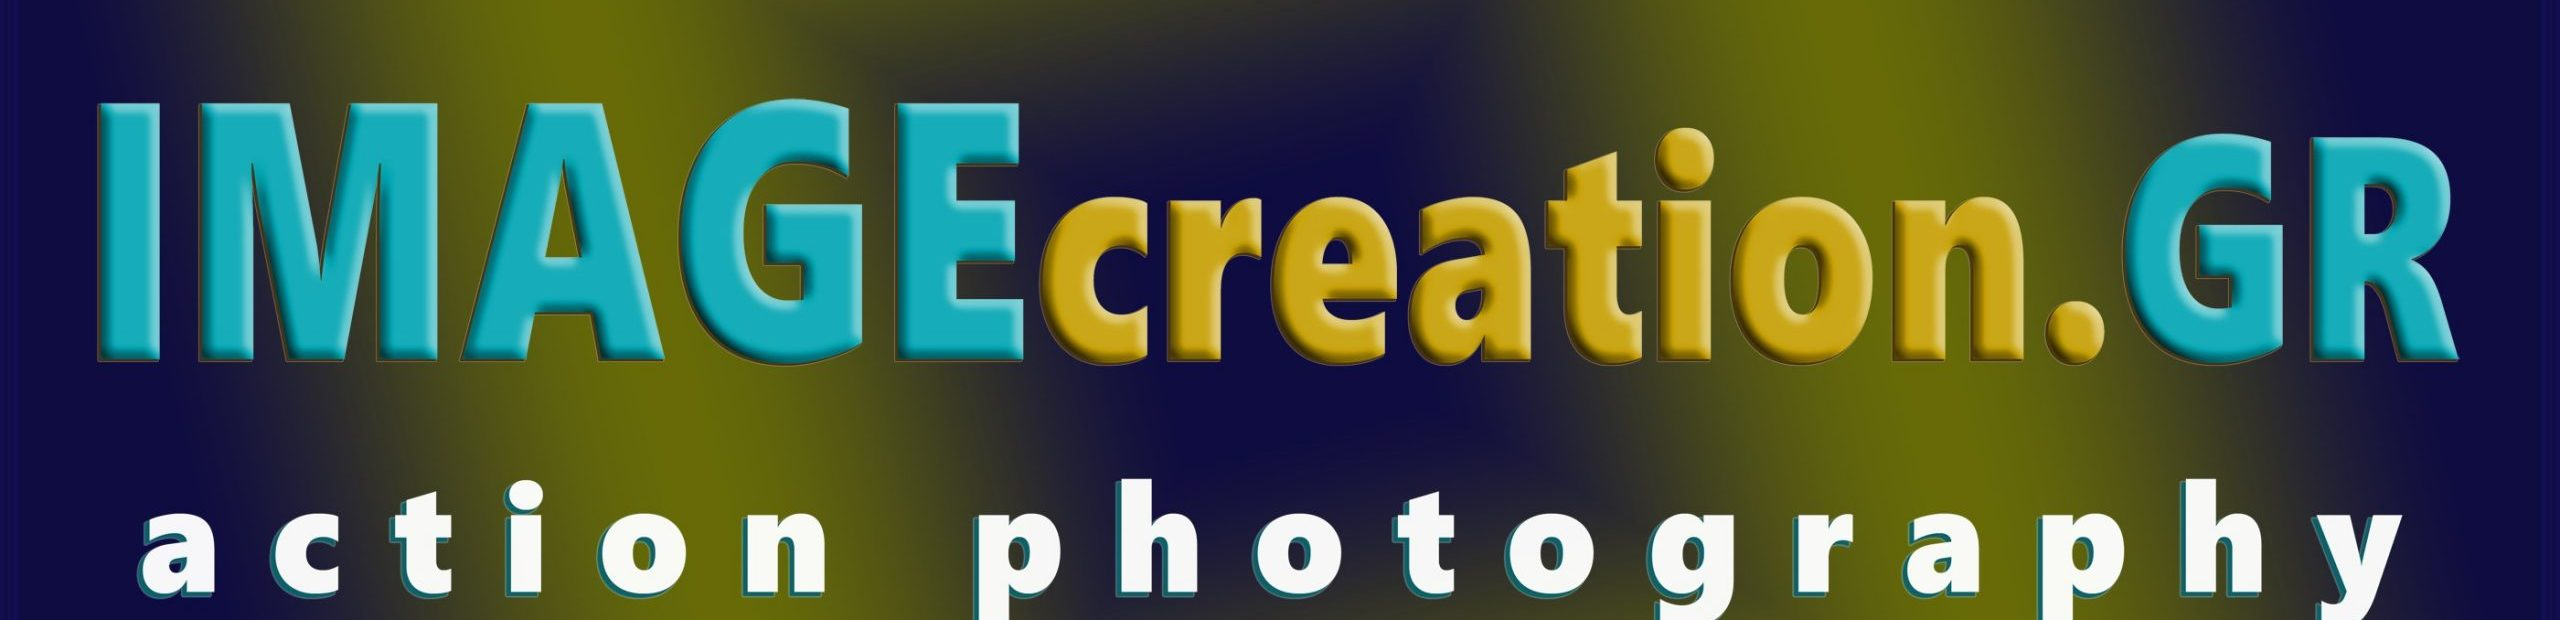 Imagecreation.gr